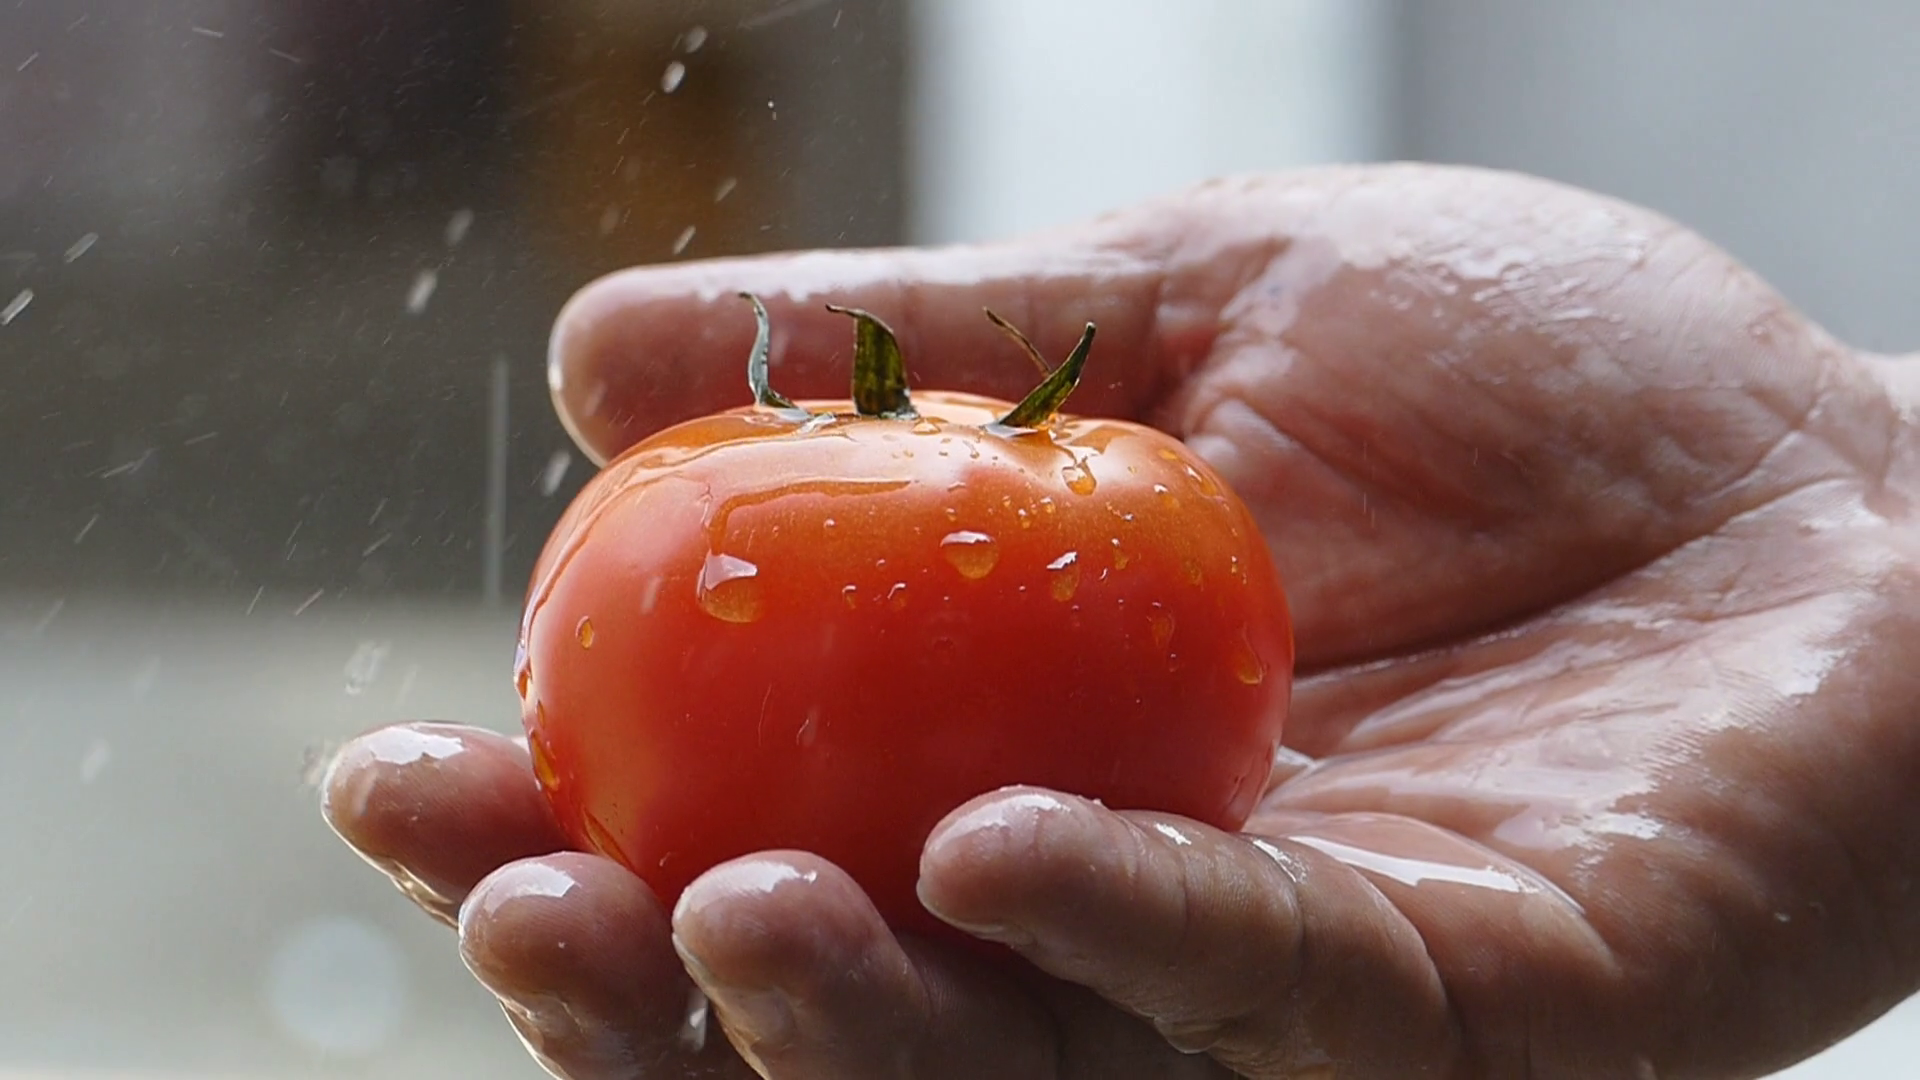 videoblocks-hold-a-tomato-wash-the-water